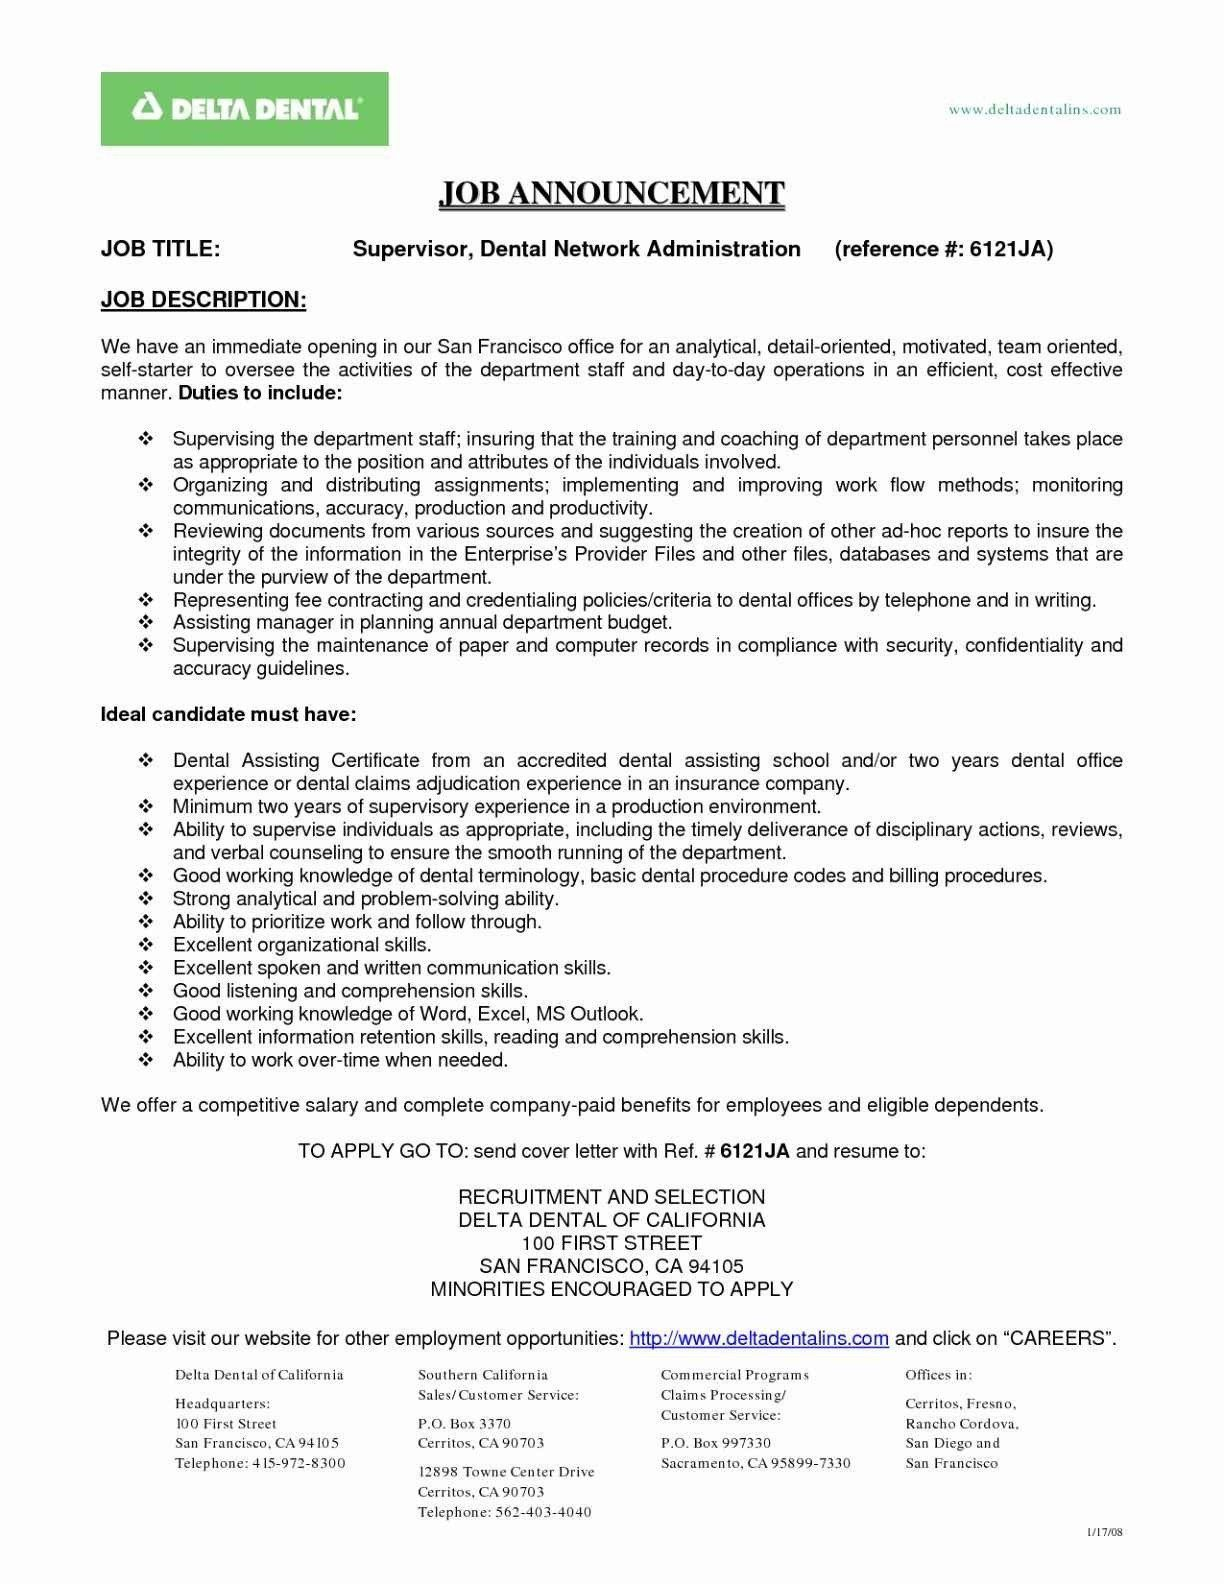 Dental Office Manager Resume Beautiful Lovely Dental Fice Manager Resume Examples Office Manager Resume Job Resume Samples Resume Cover Letter Examples